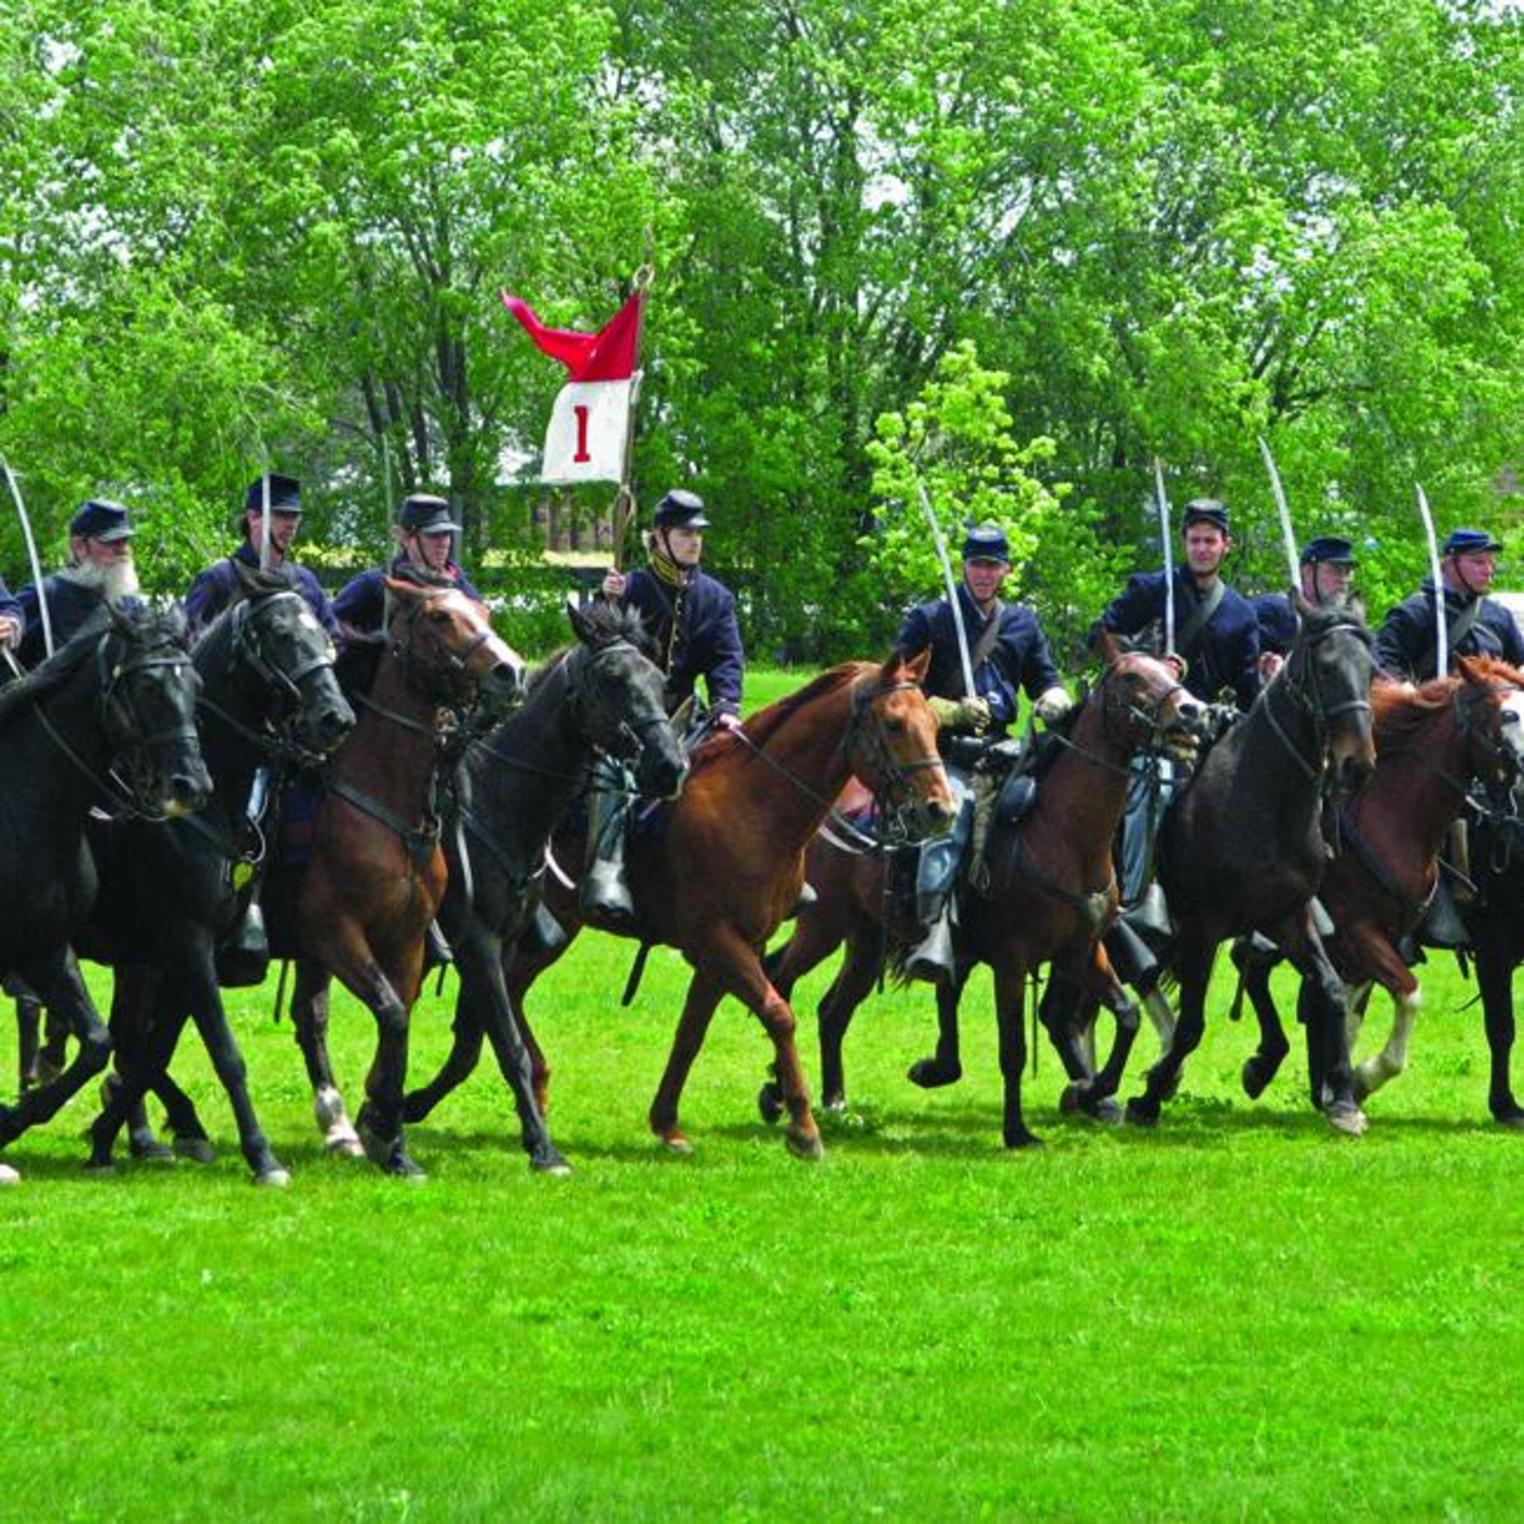 Civil War reenactment at Army Heritage Days at the U.S. Army Heritage & Education Center